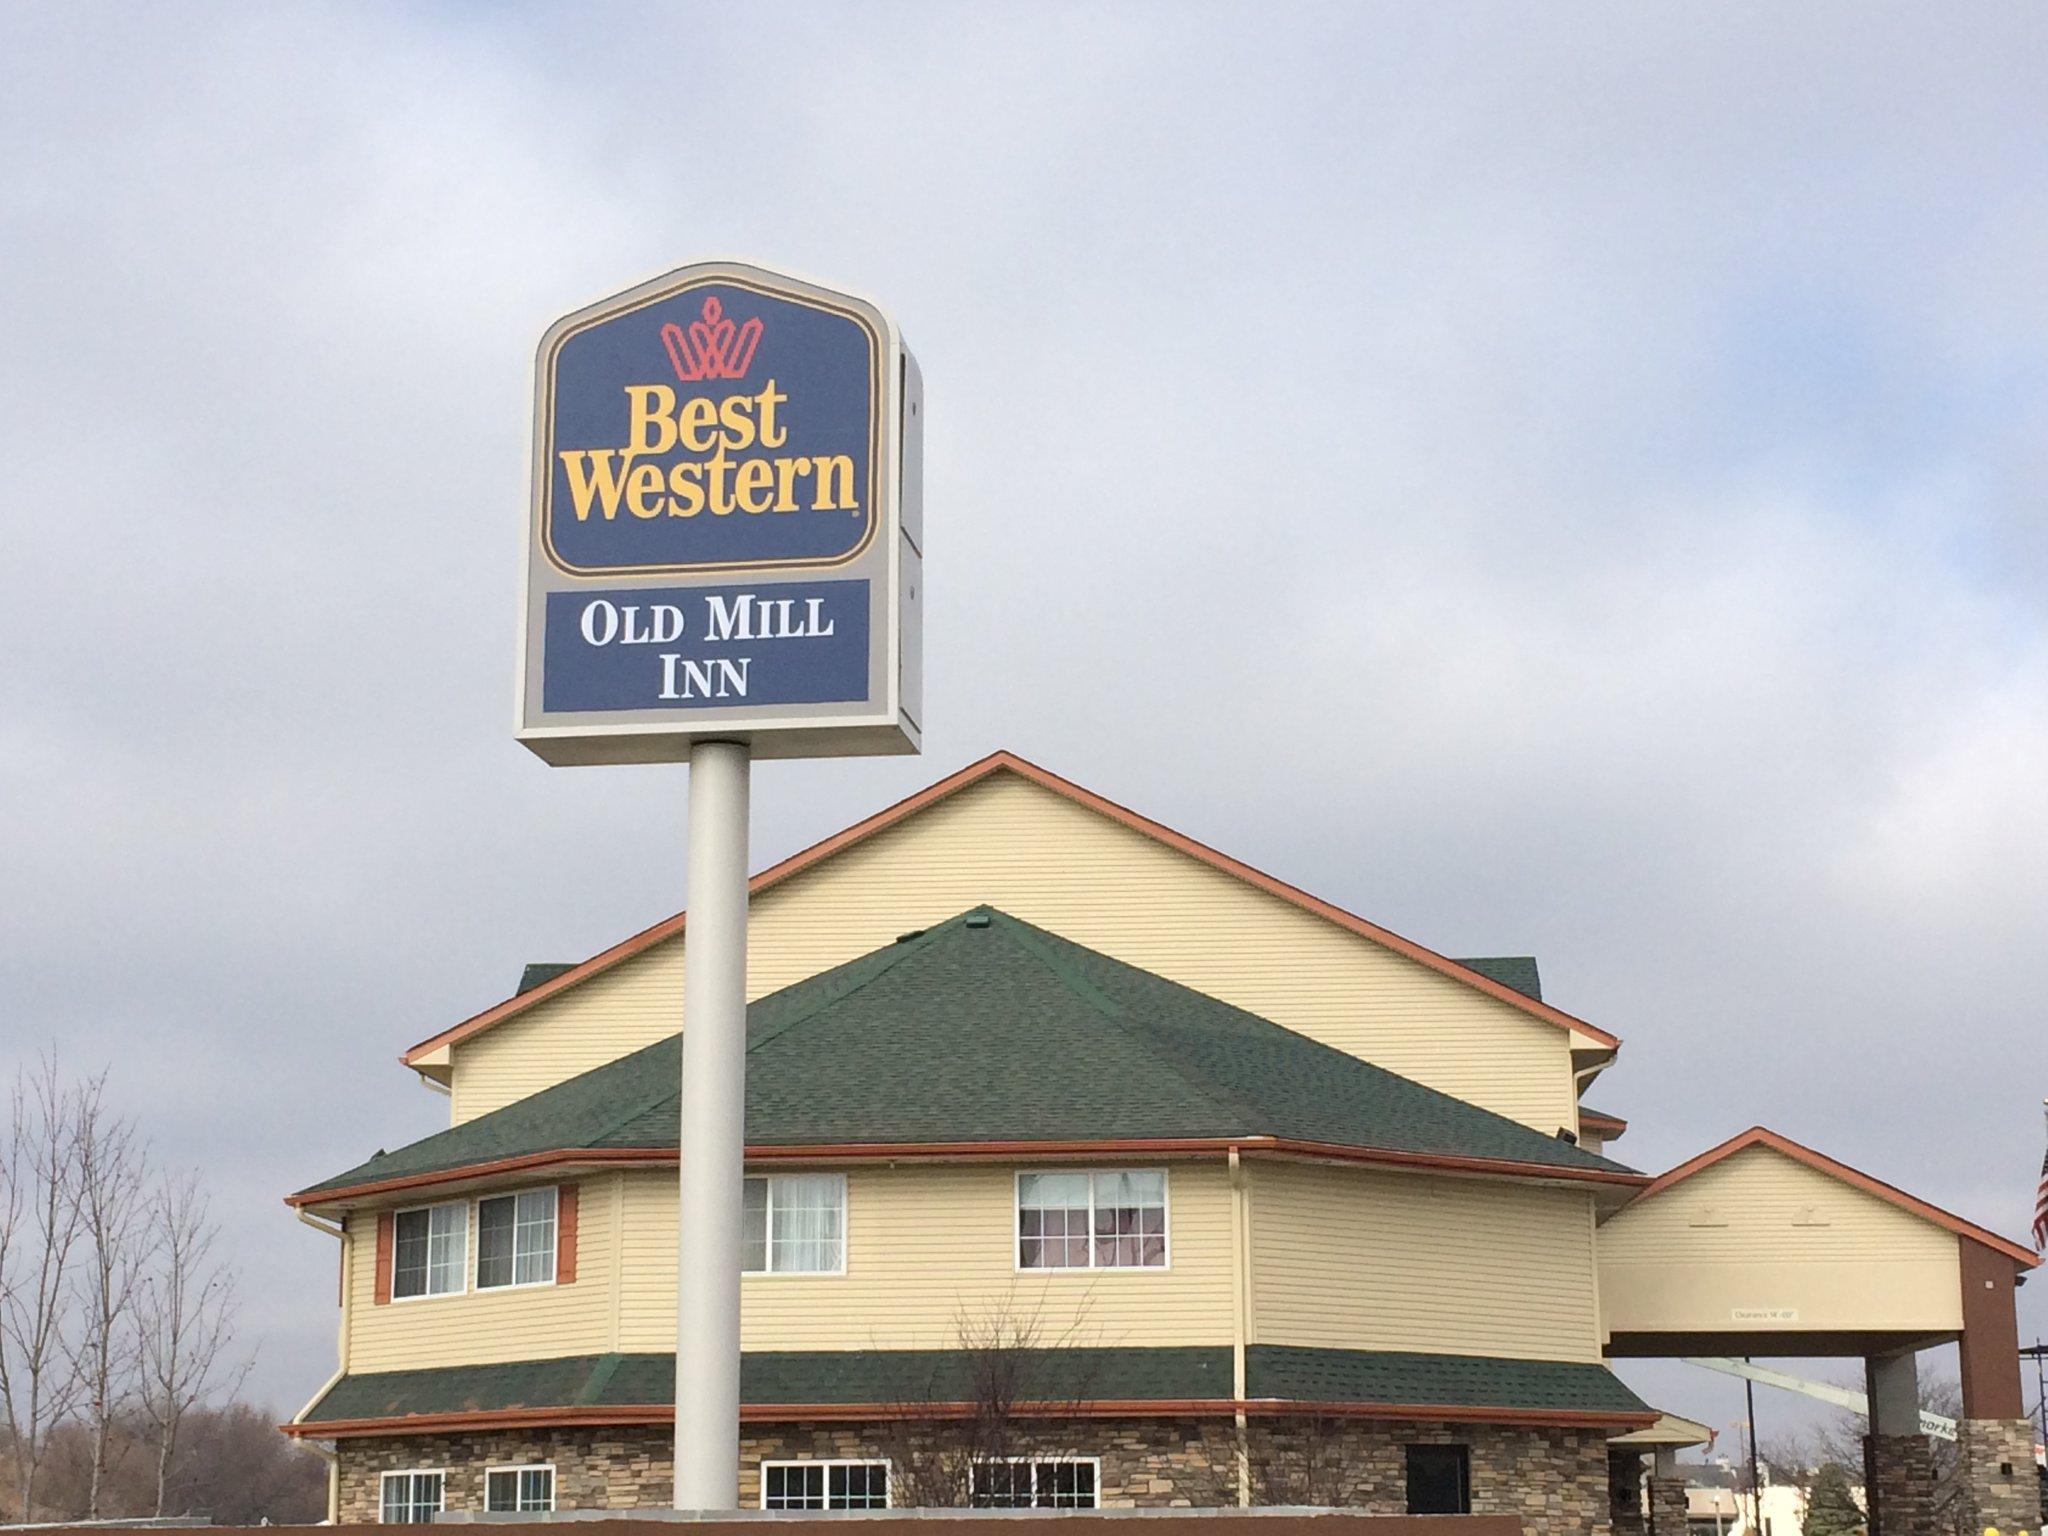 BEST WESTERN Old Mill Inn